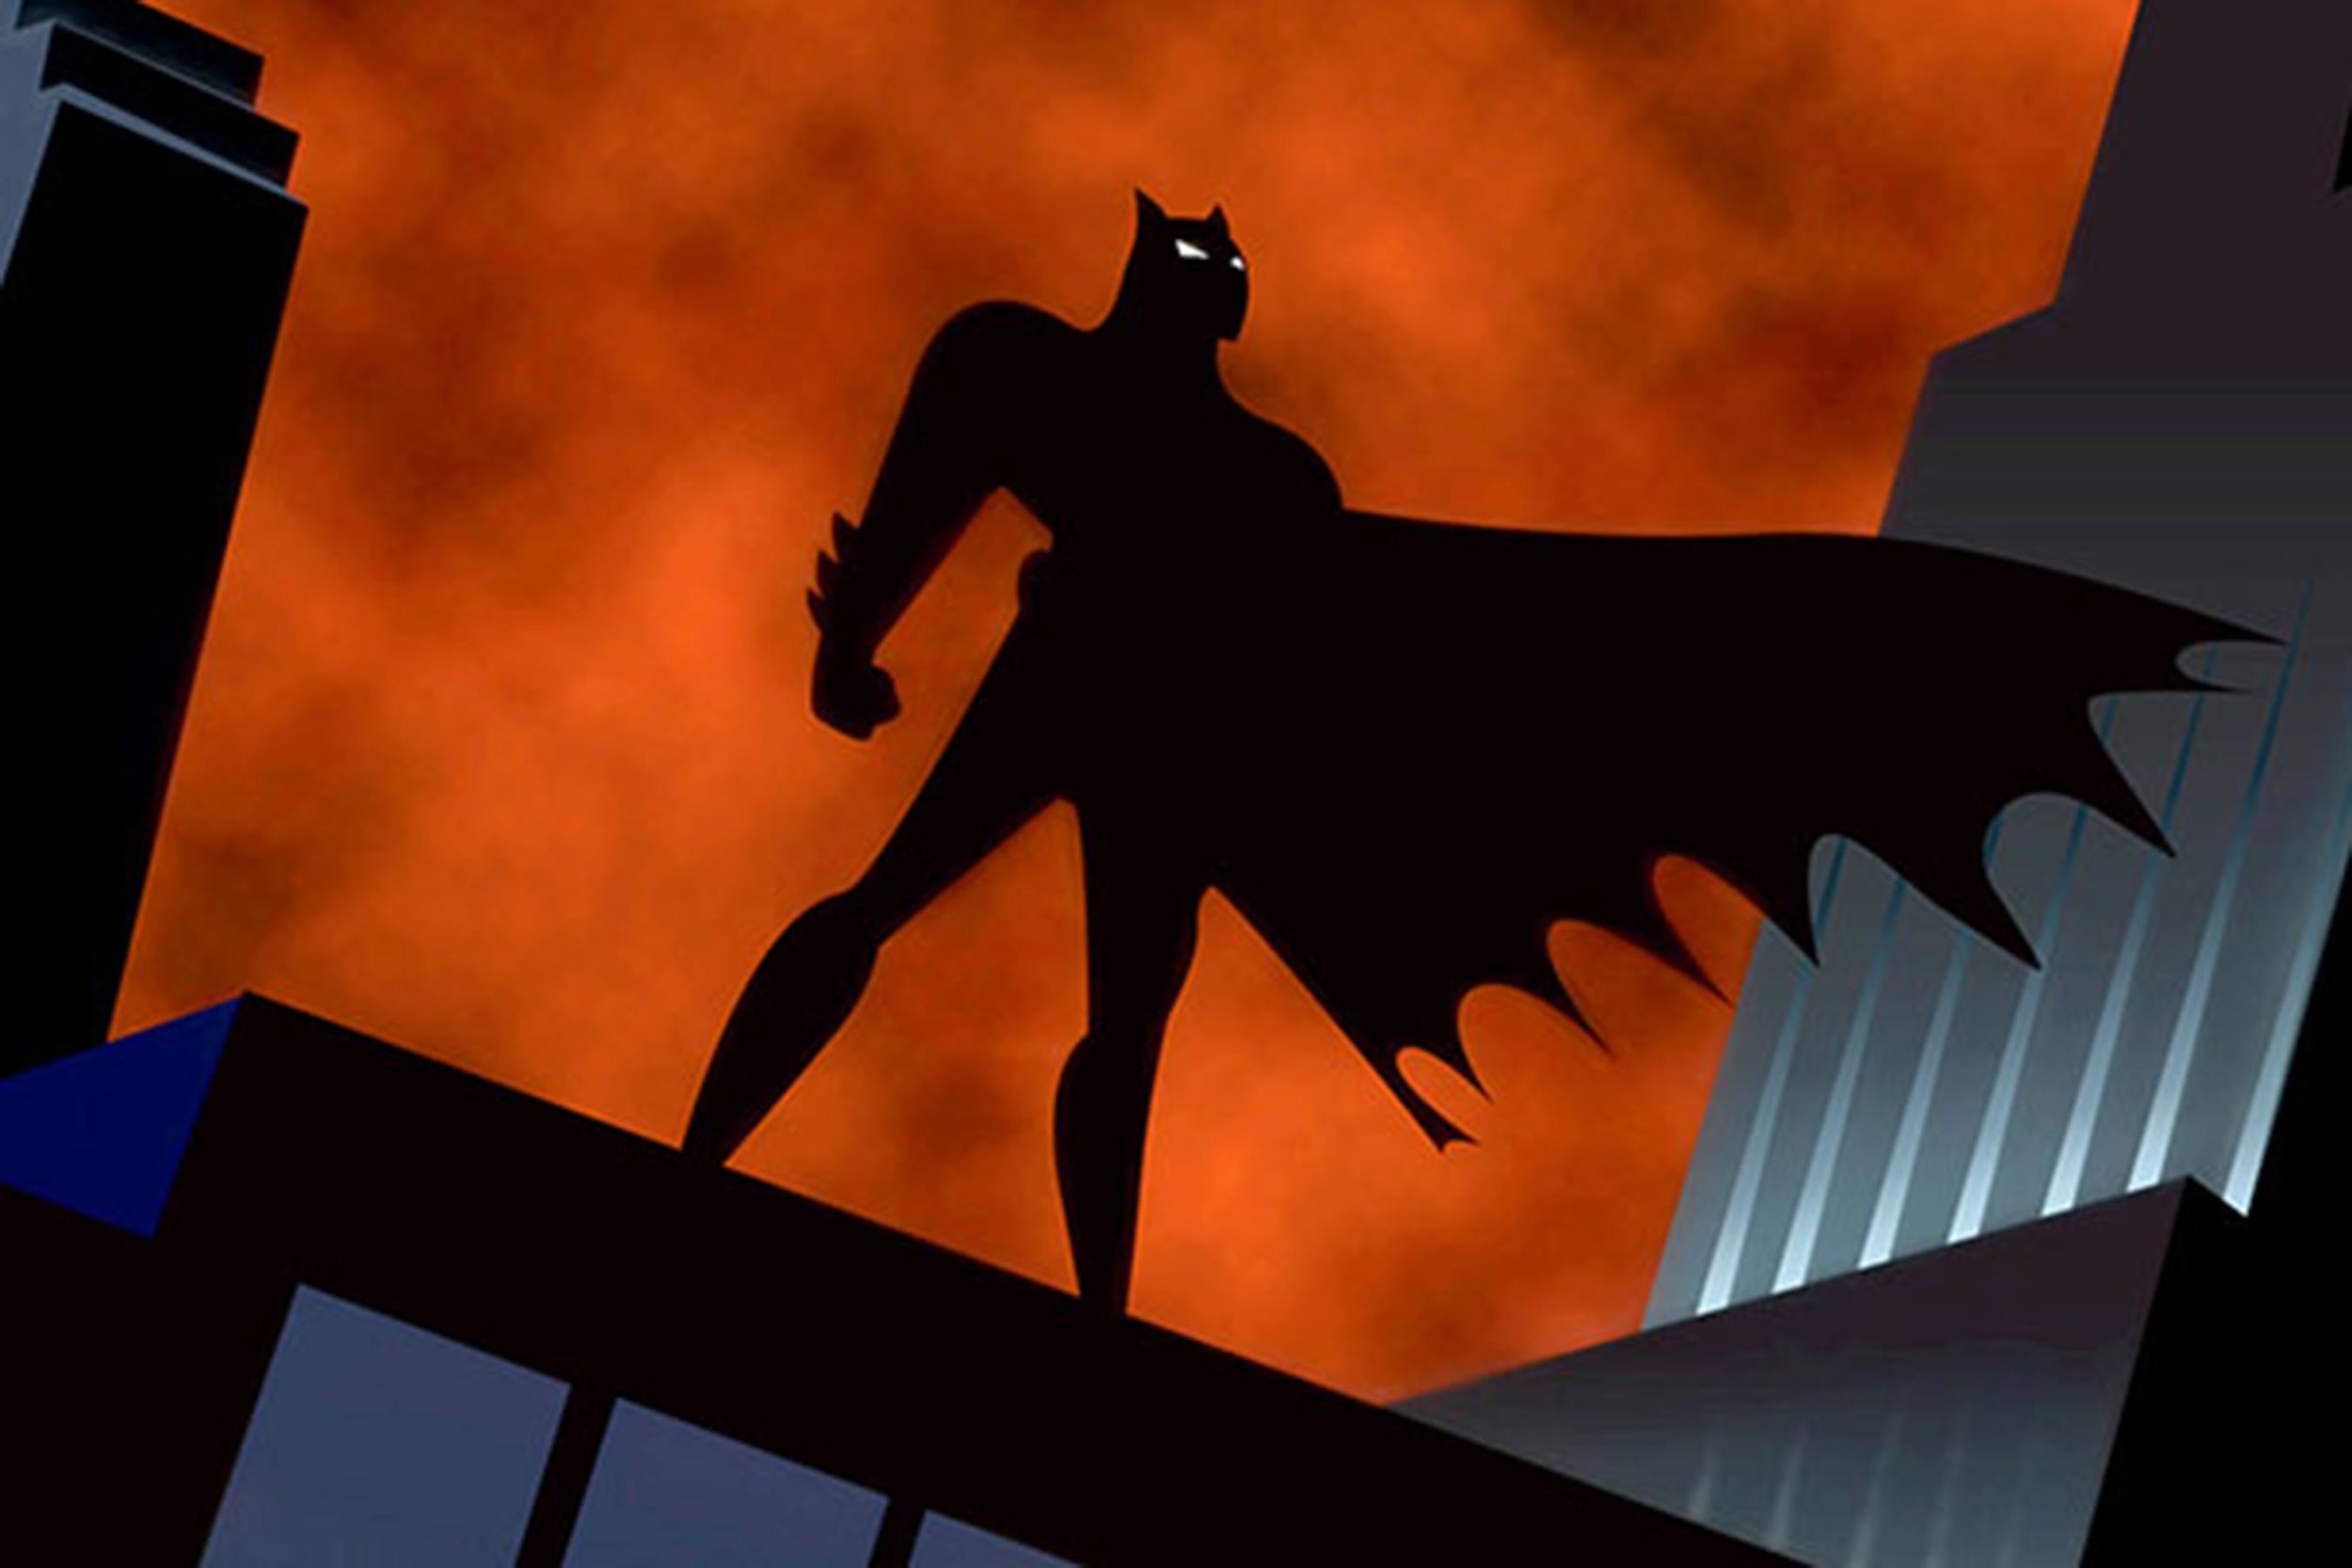 FUN FACT: The Batman series won a string of Daytime Emmy awards, including one for Outstanding Writing in an Animated Program, one for Outstanding Music Direction and Composition, and another for Outstanding Sound Editing.